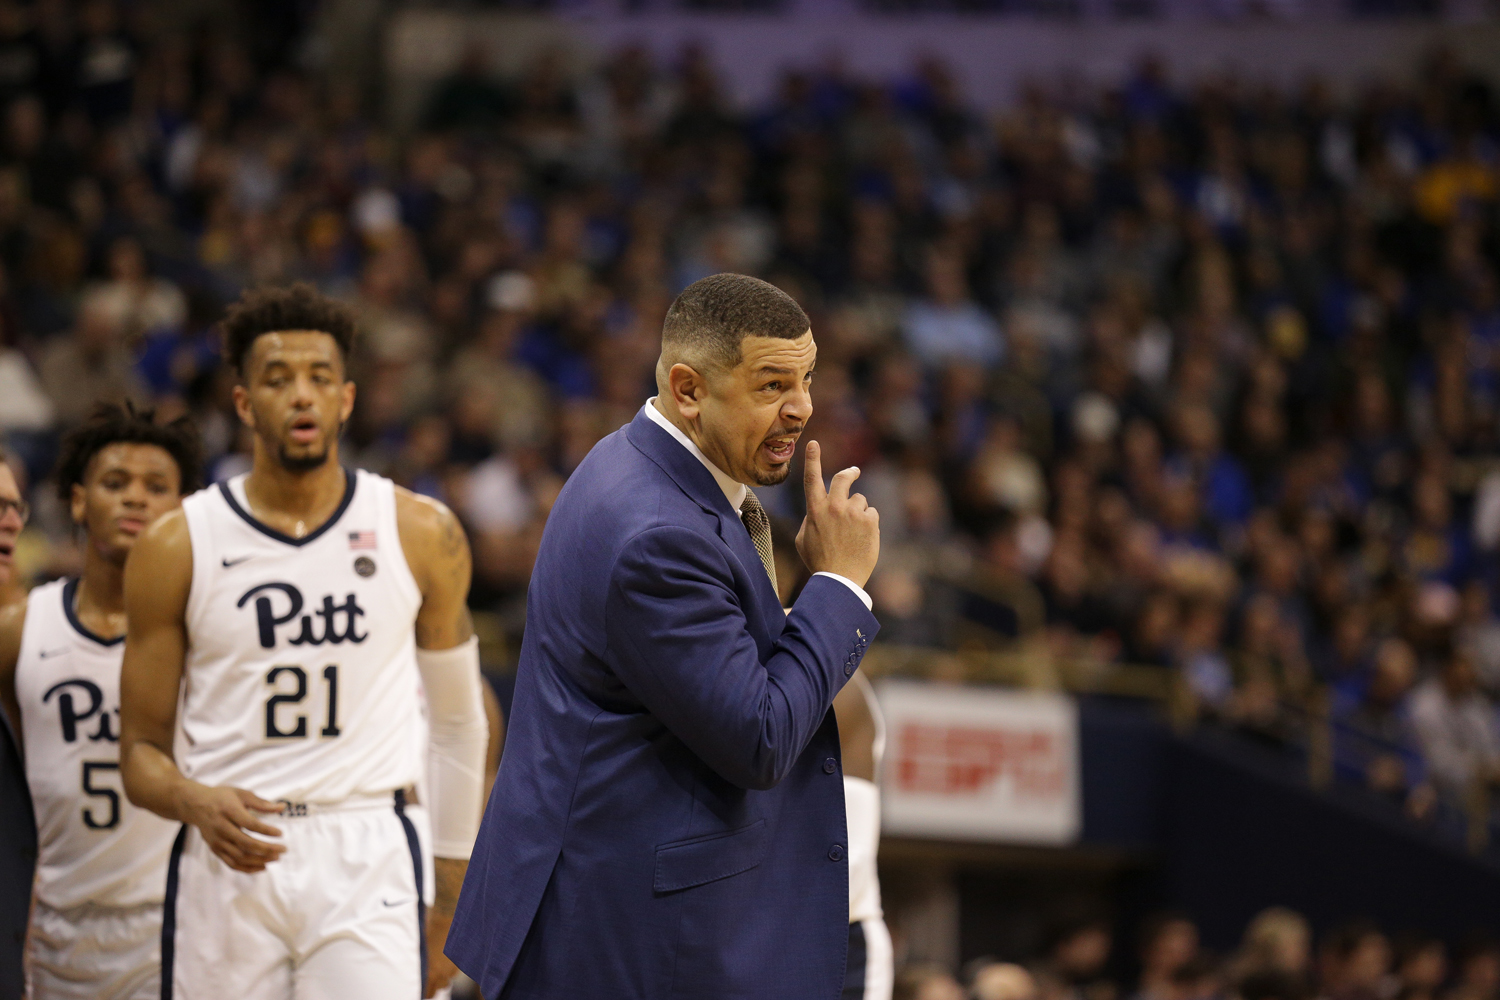 Men's basketball head coach Jeff Capel aims to restore the team to its former powerhouse status.